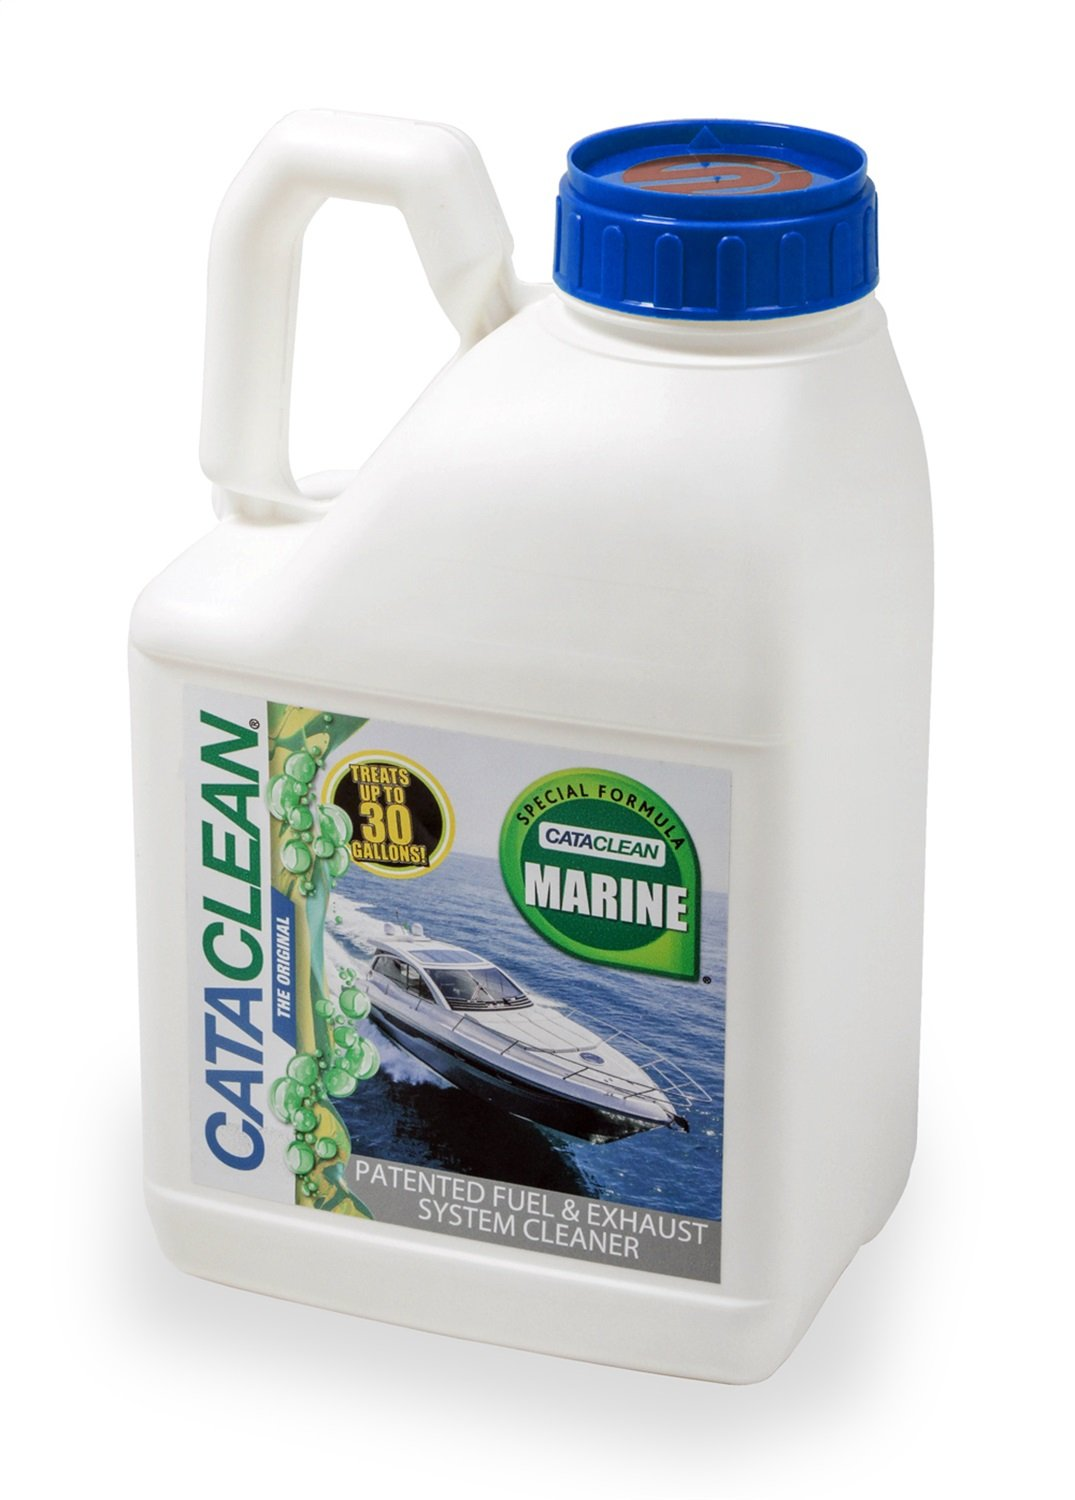 Cataclean 120018M Cataclean Fuel And Exhaust System Cleaner Special Formula For Use w/Marine Engines 3 Liters Cataclean Fuel And Exhaust System Cleaner